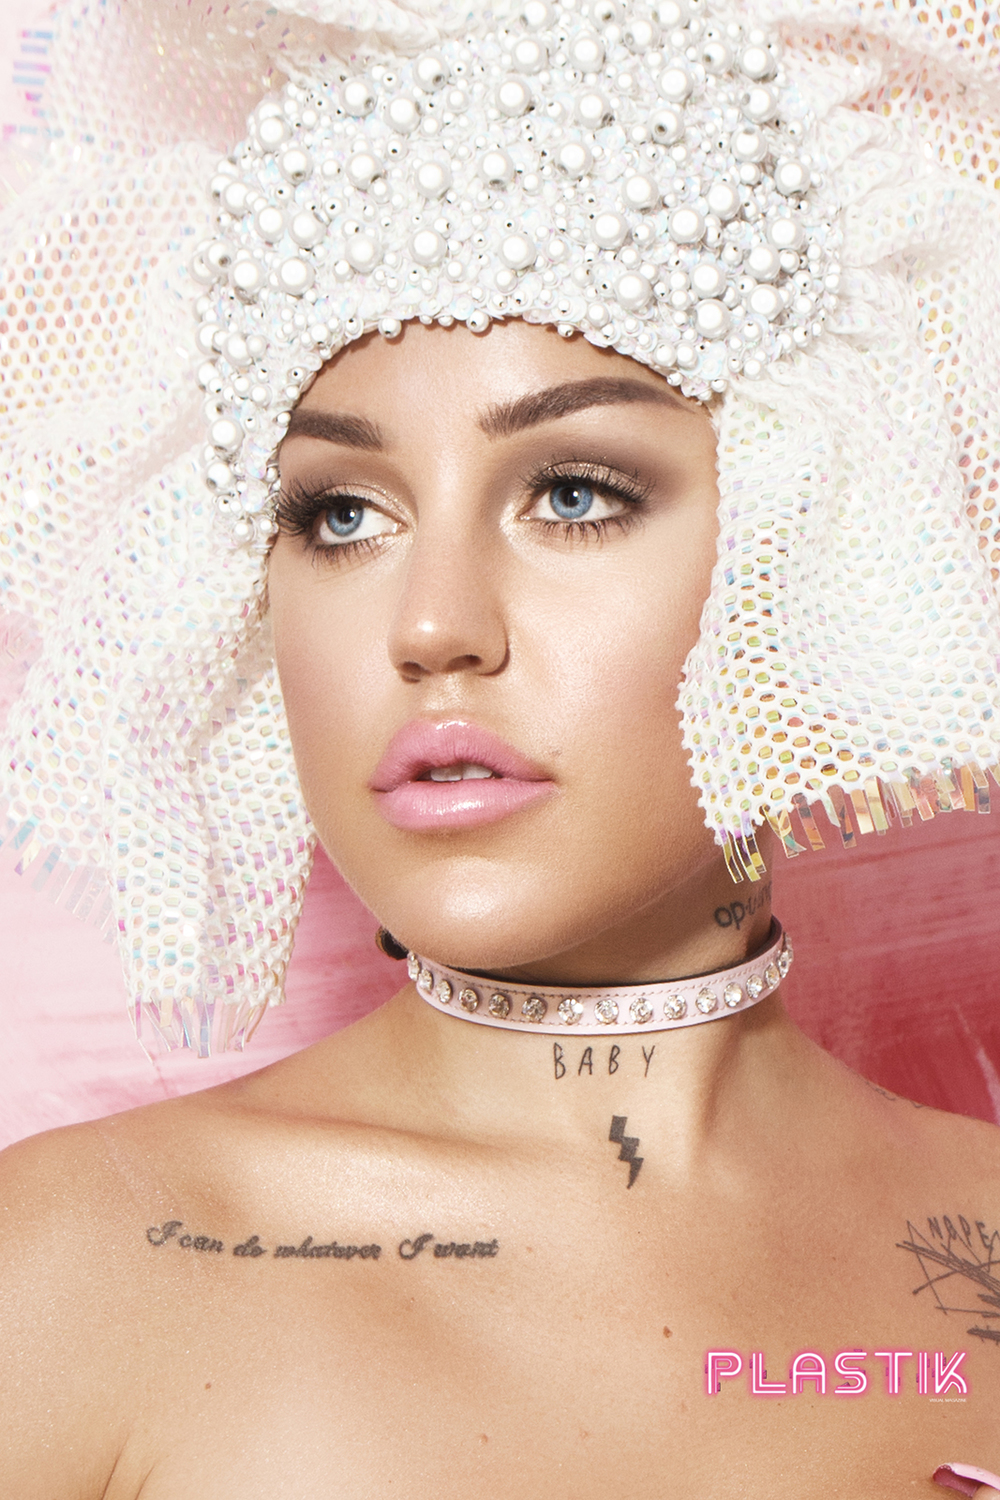 BROOKE CANDY PLASTIK MAGAZINE copy.jpg